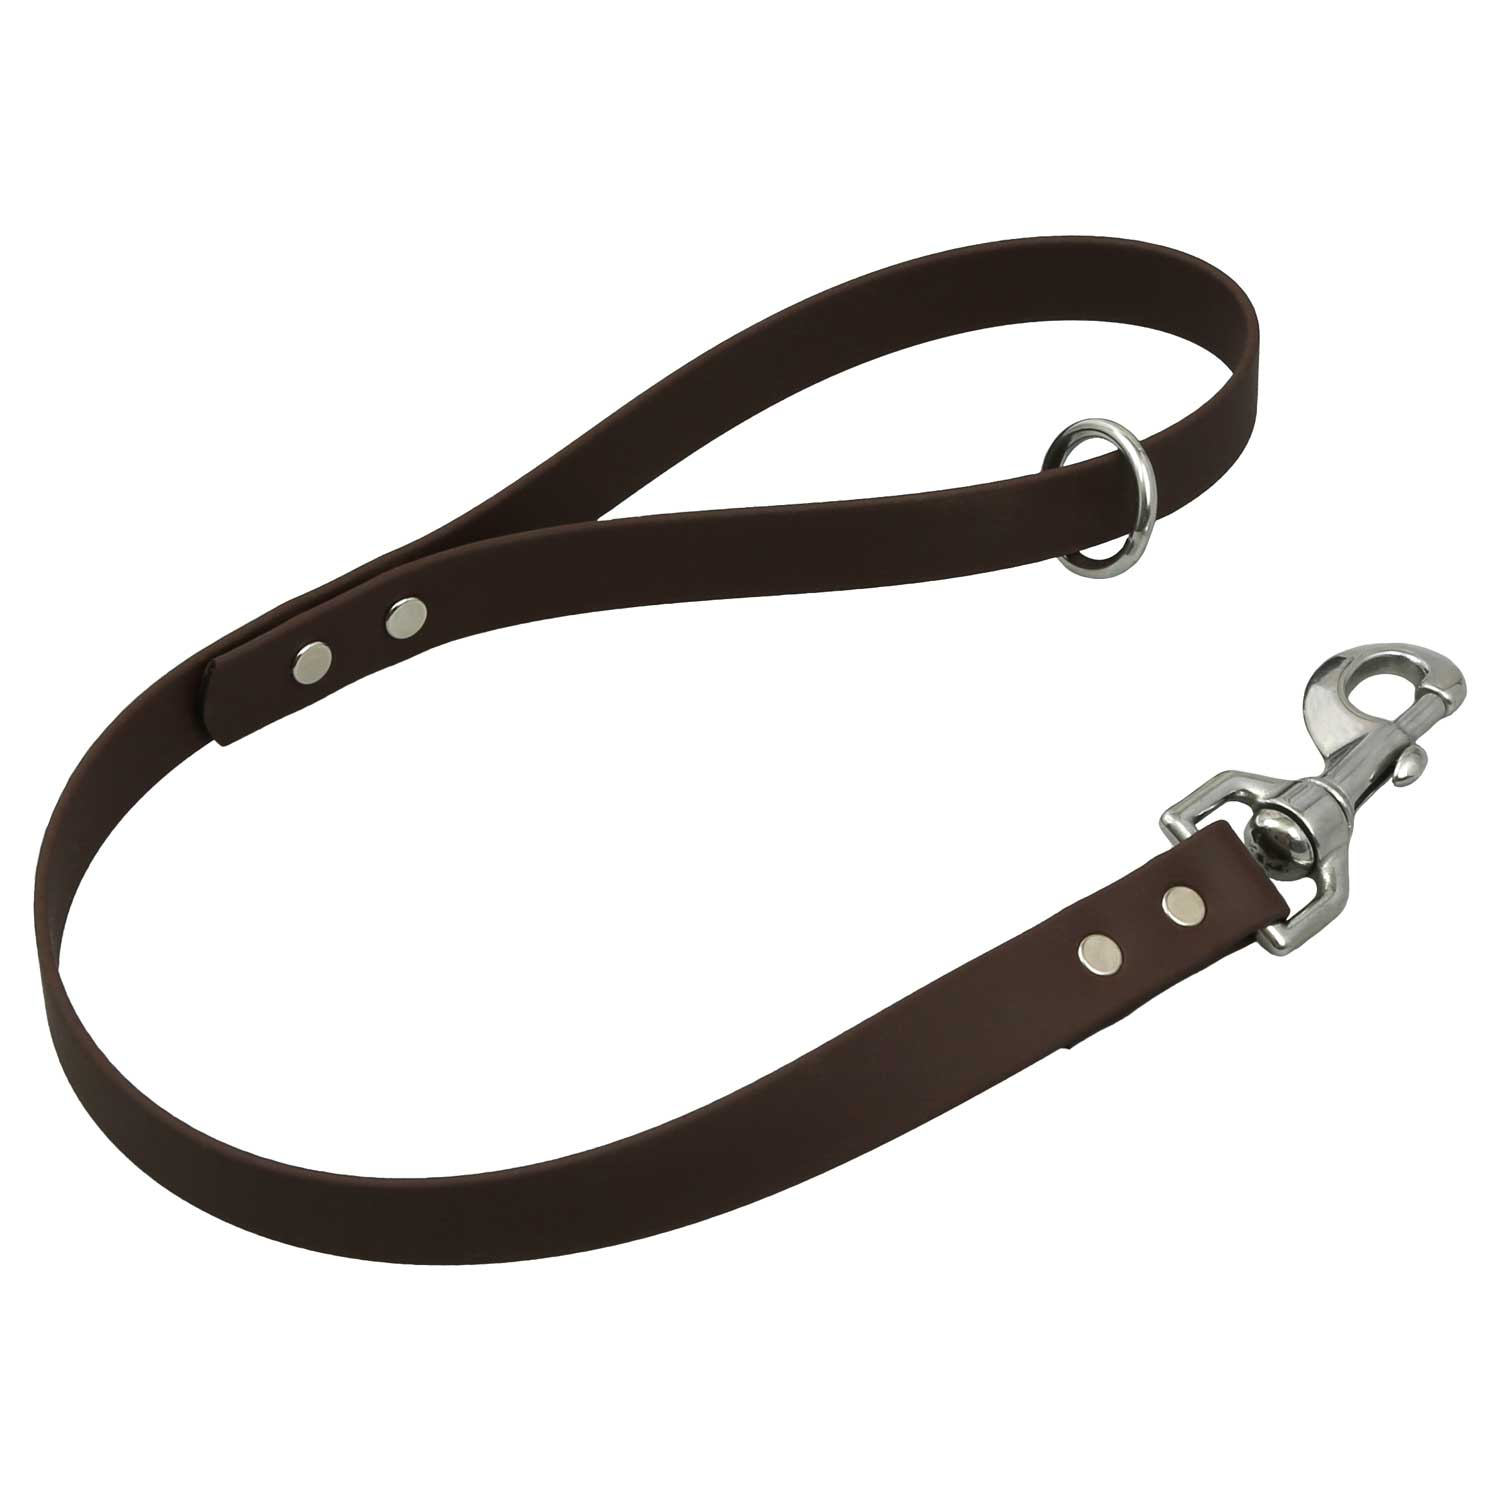 Waterproof Traffic Leash - Brown